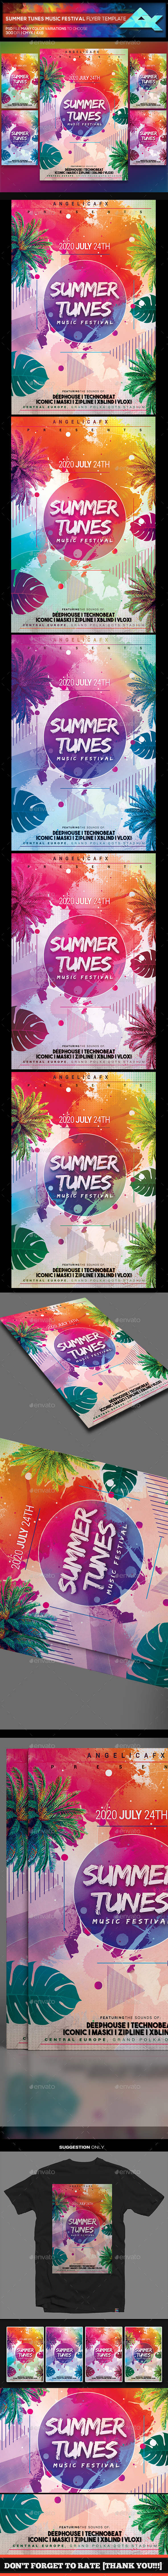 Summer Tunes Flyer Template - Flyers Print Templates